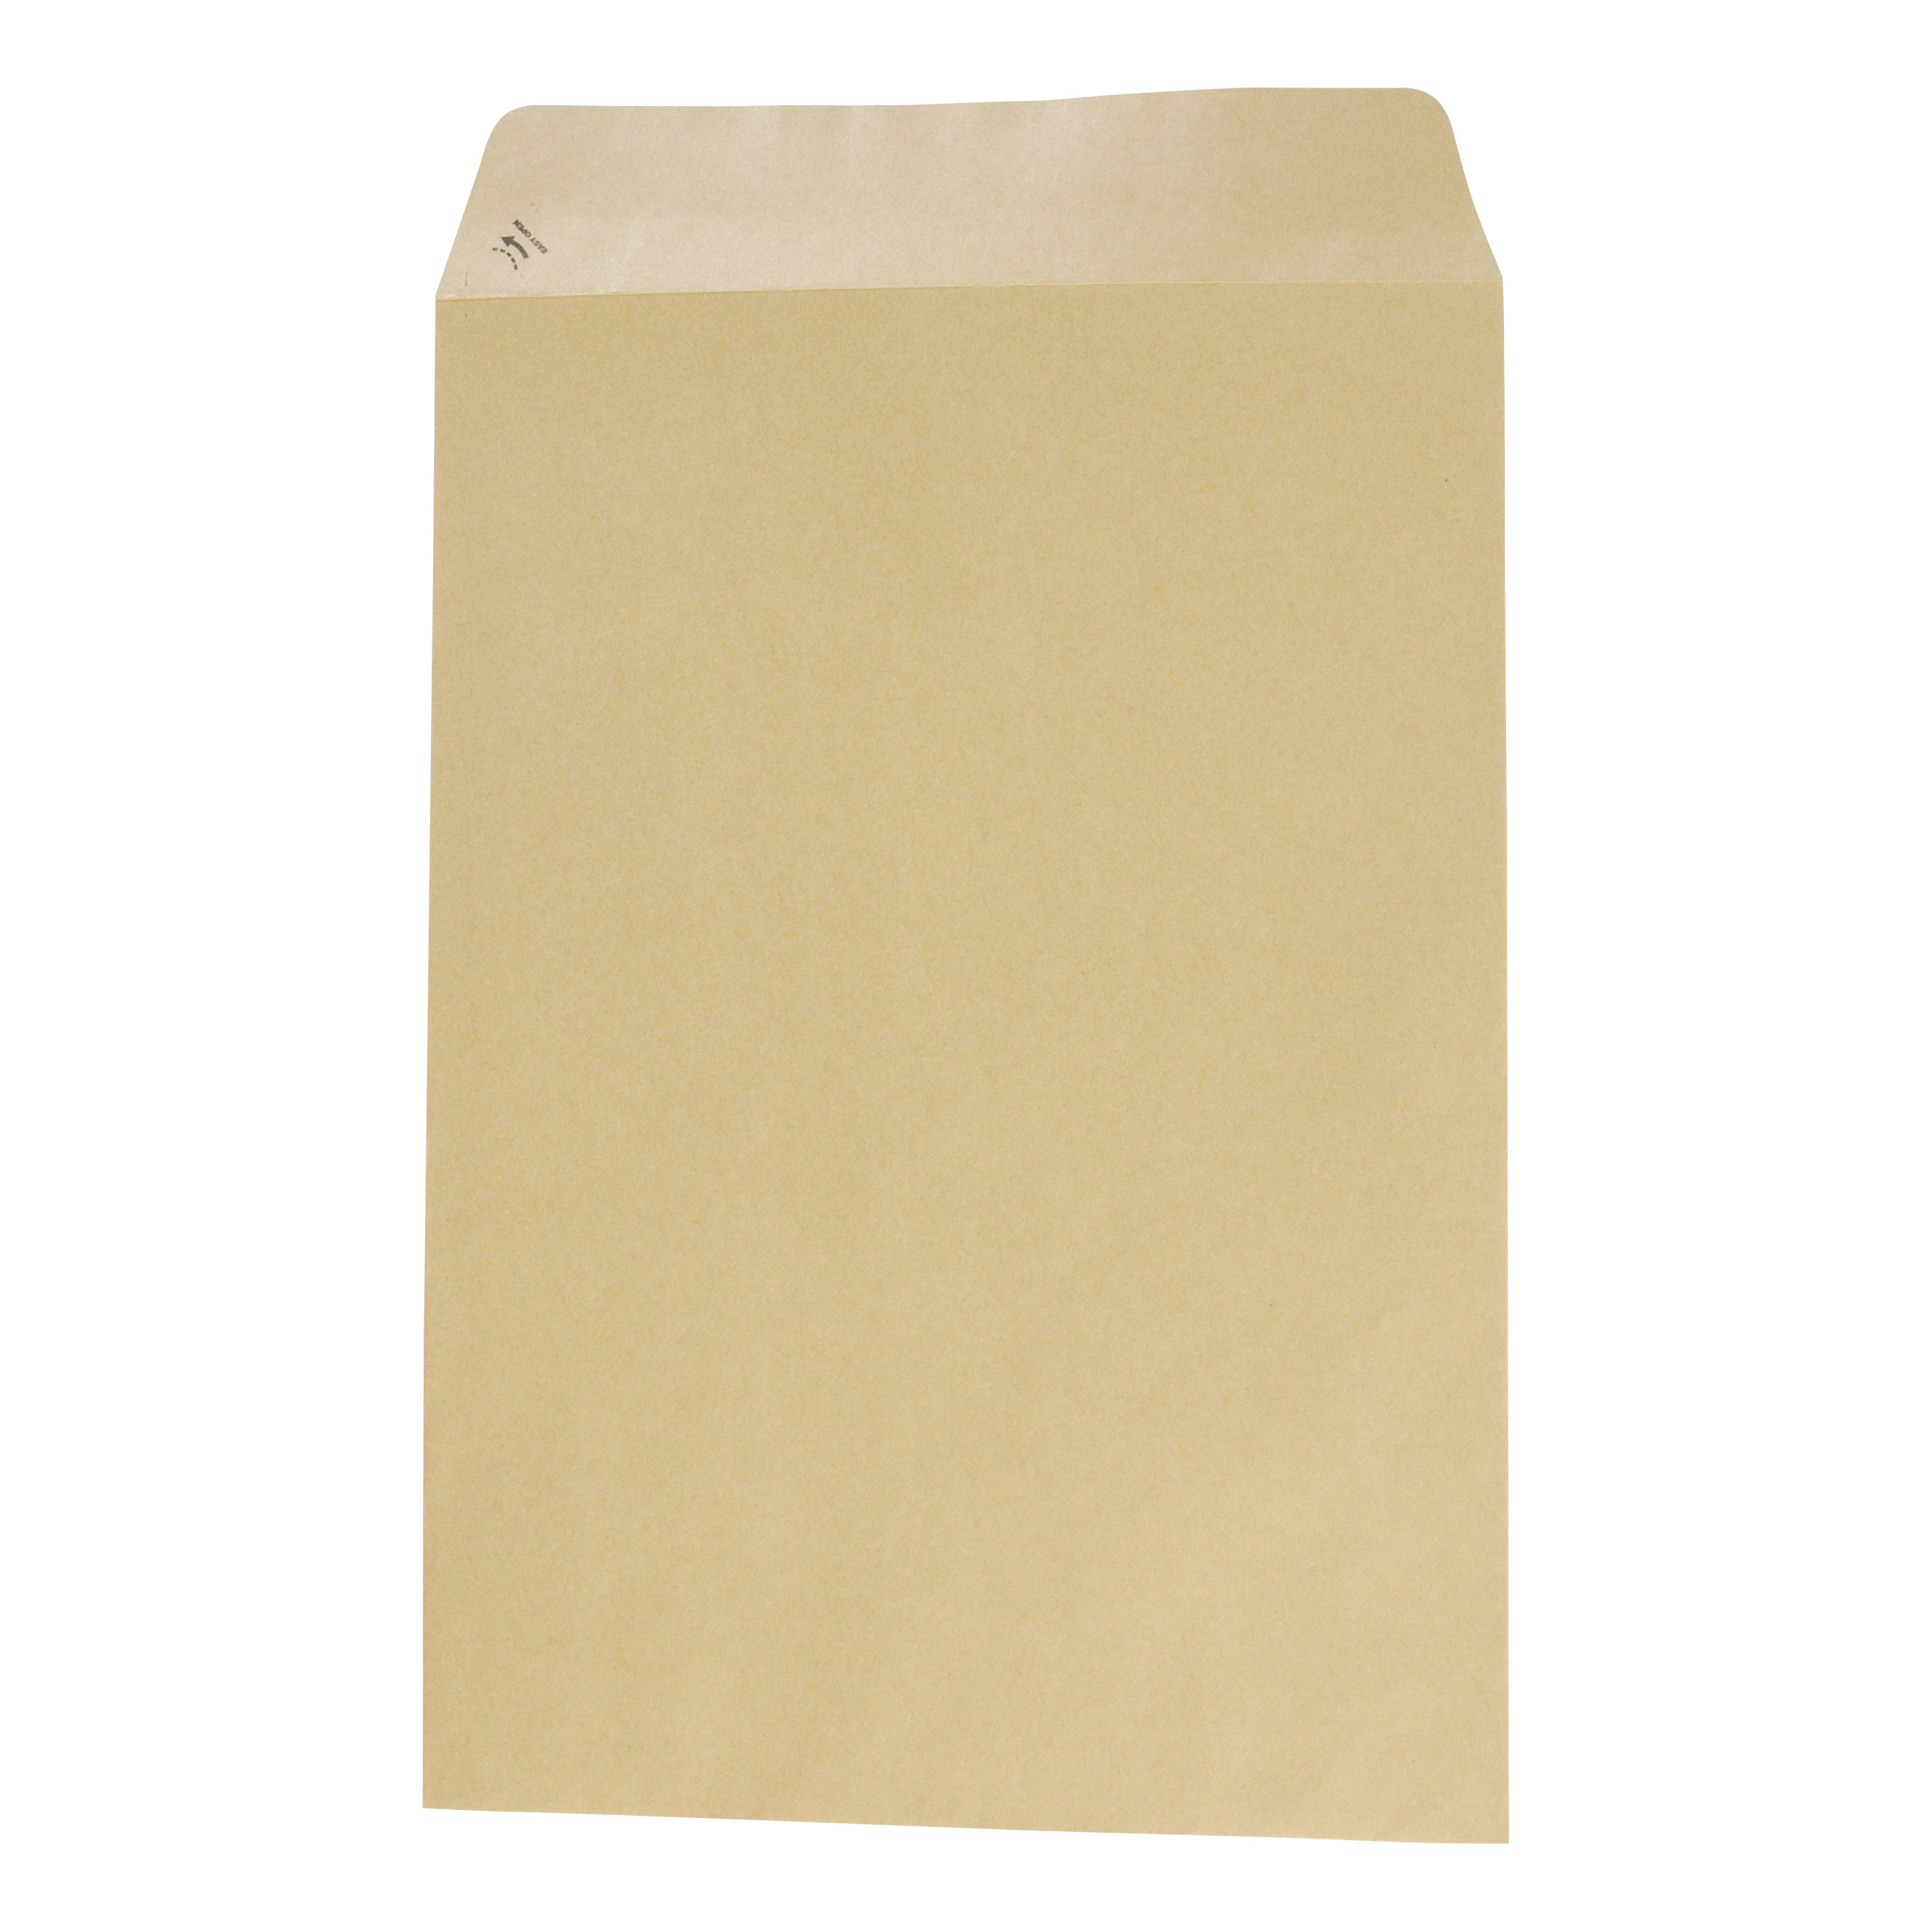 Basildon Bond Envelopes C4 Pocket Peel and Seal 90gsm Manilla Ref C80191 [Pack 250]